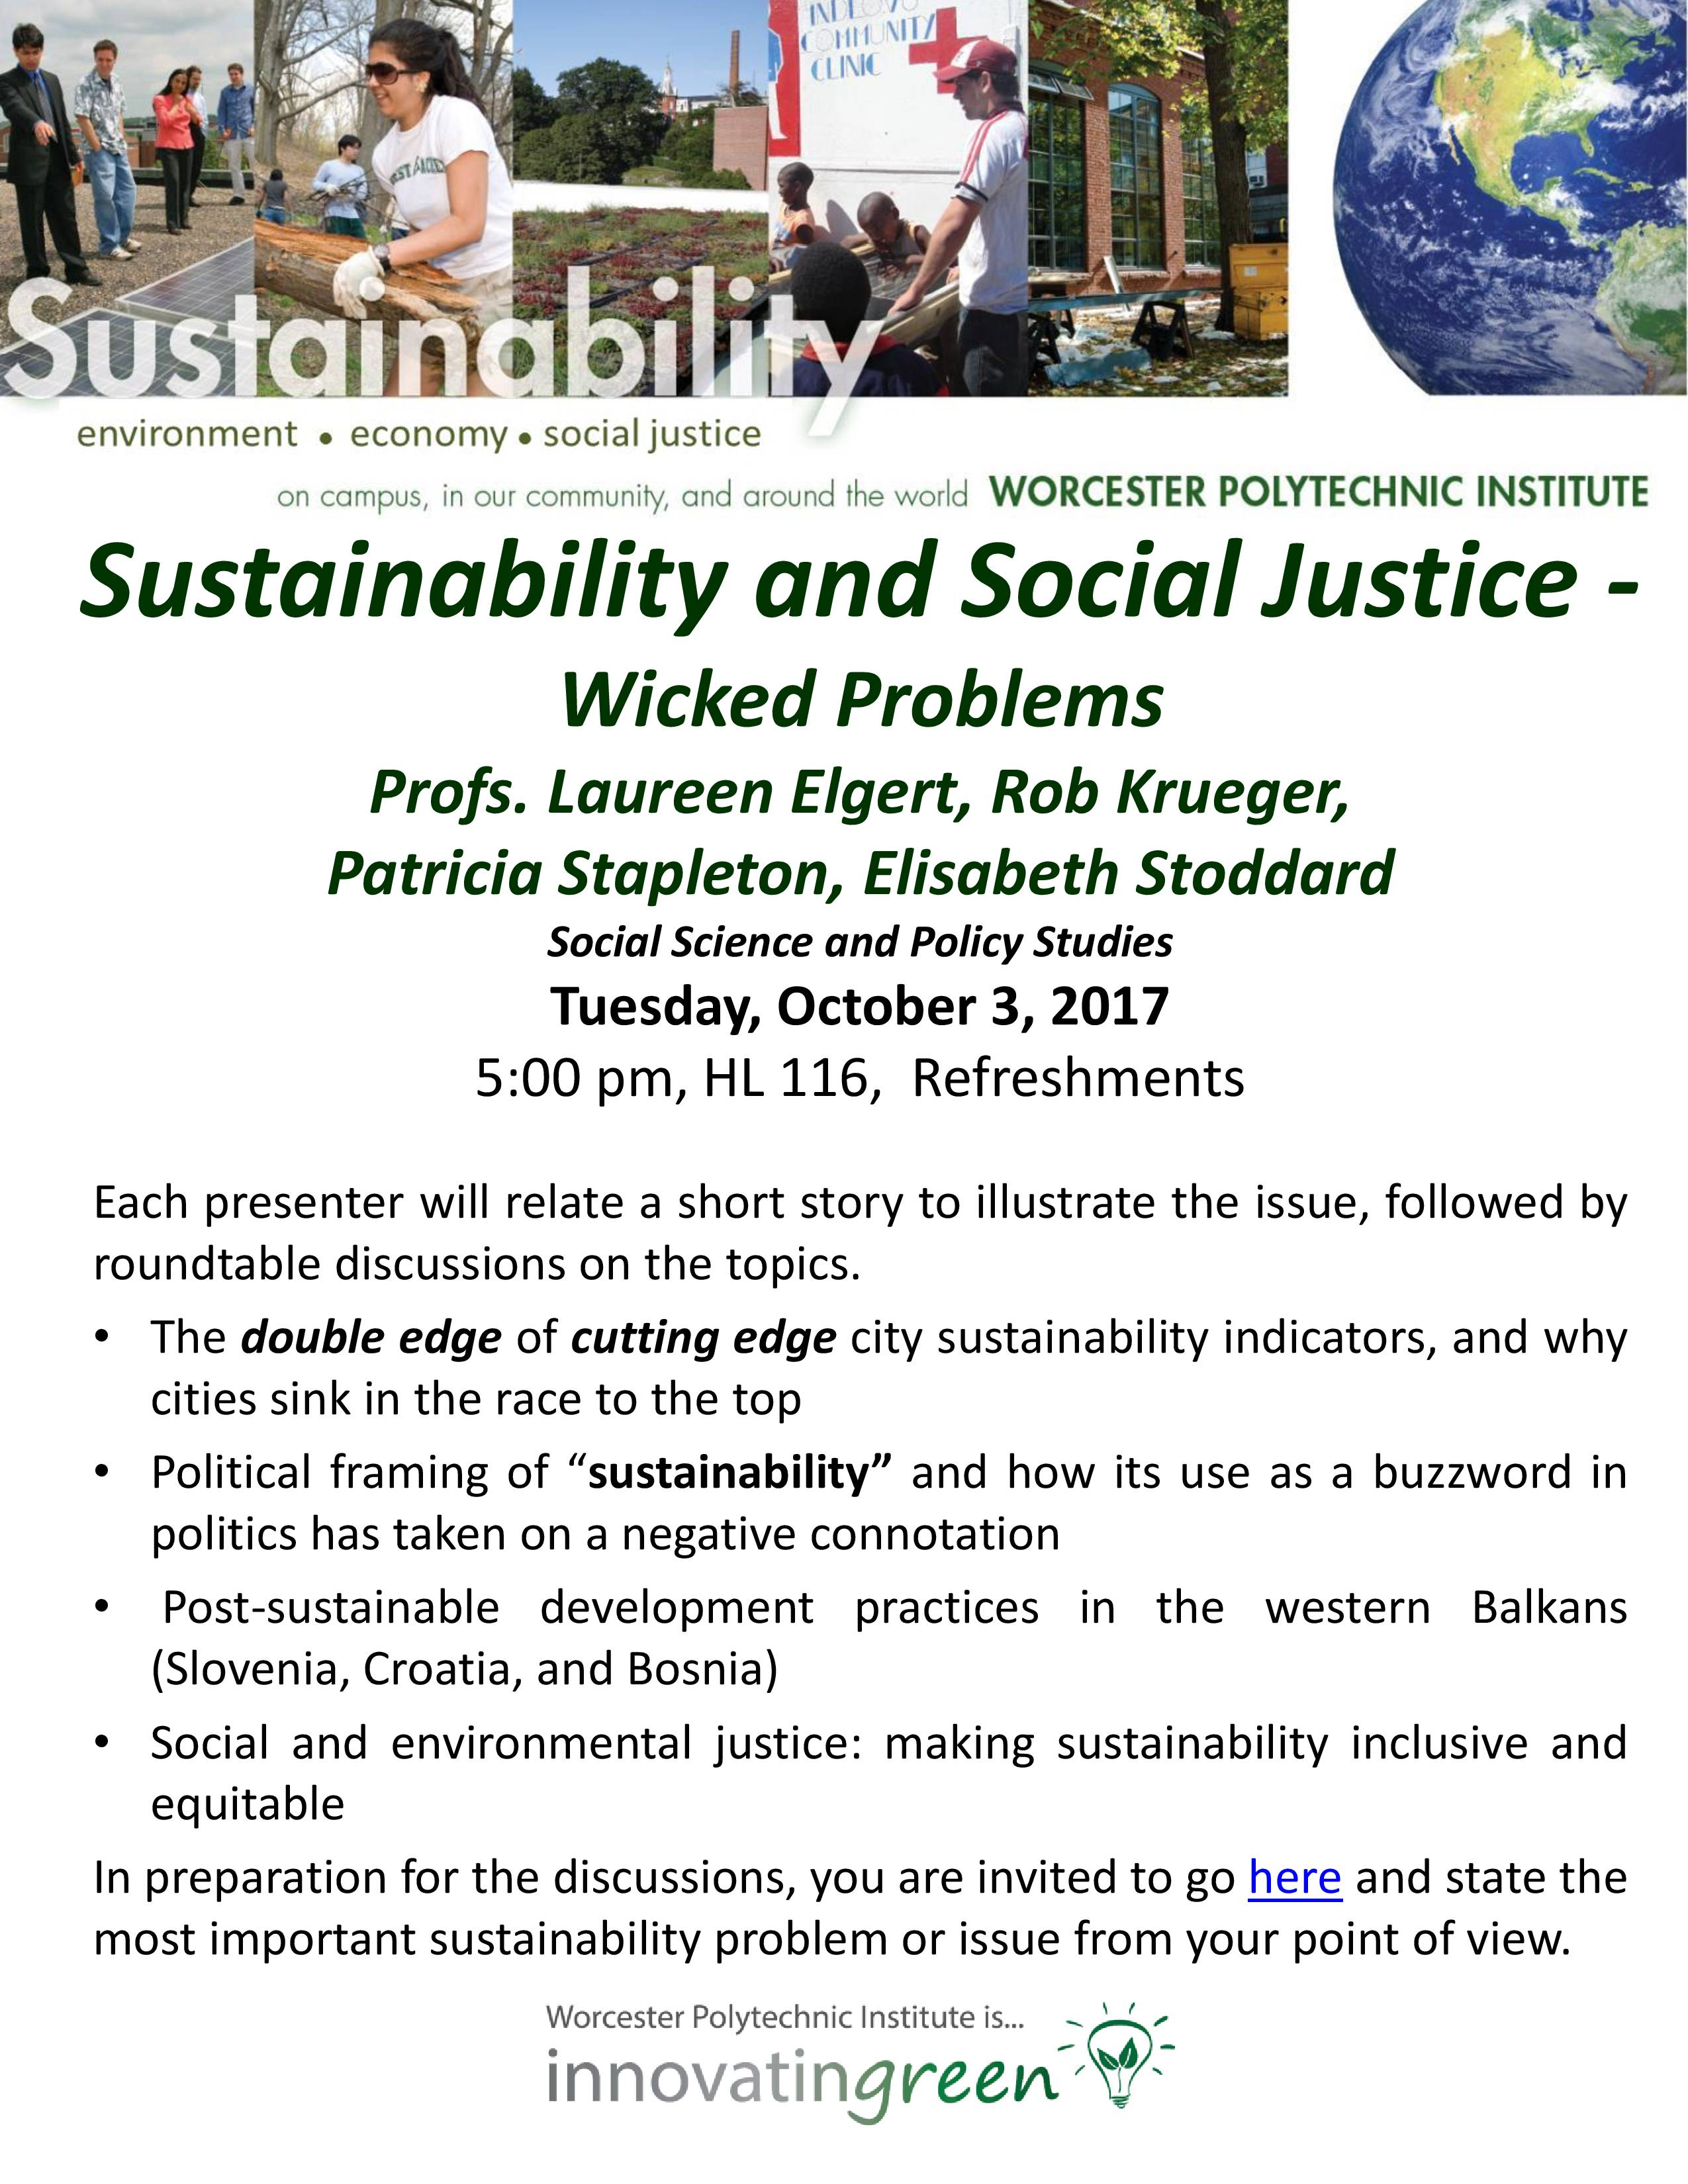 Sustainability Round Table Seminar Poster